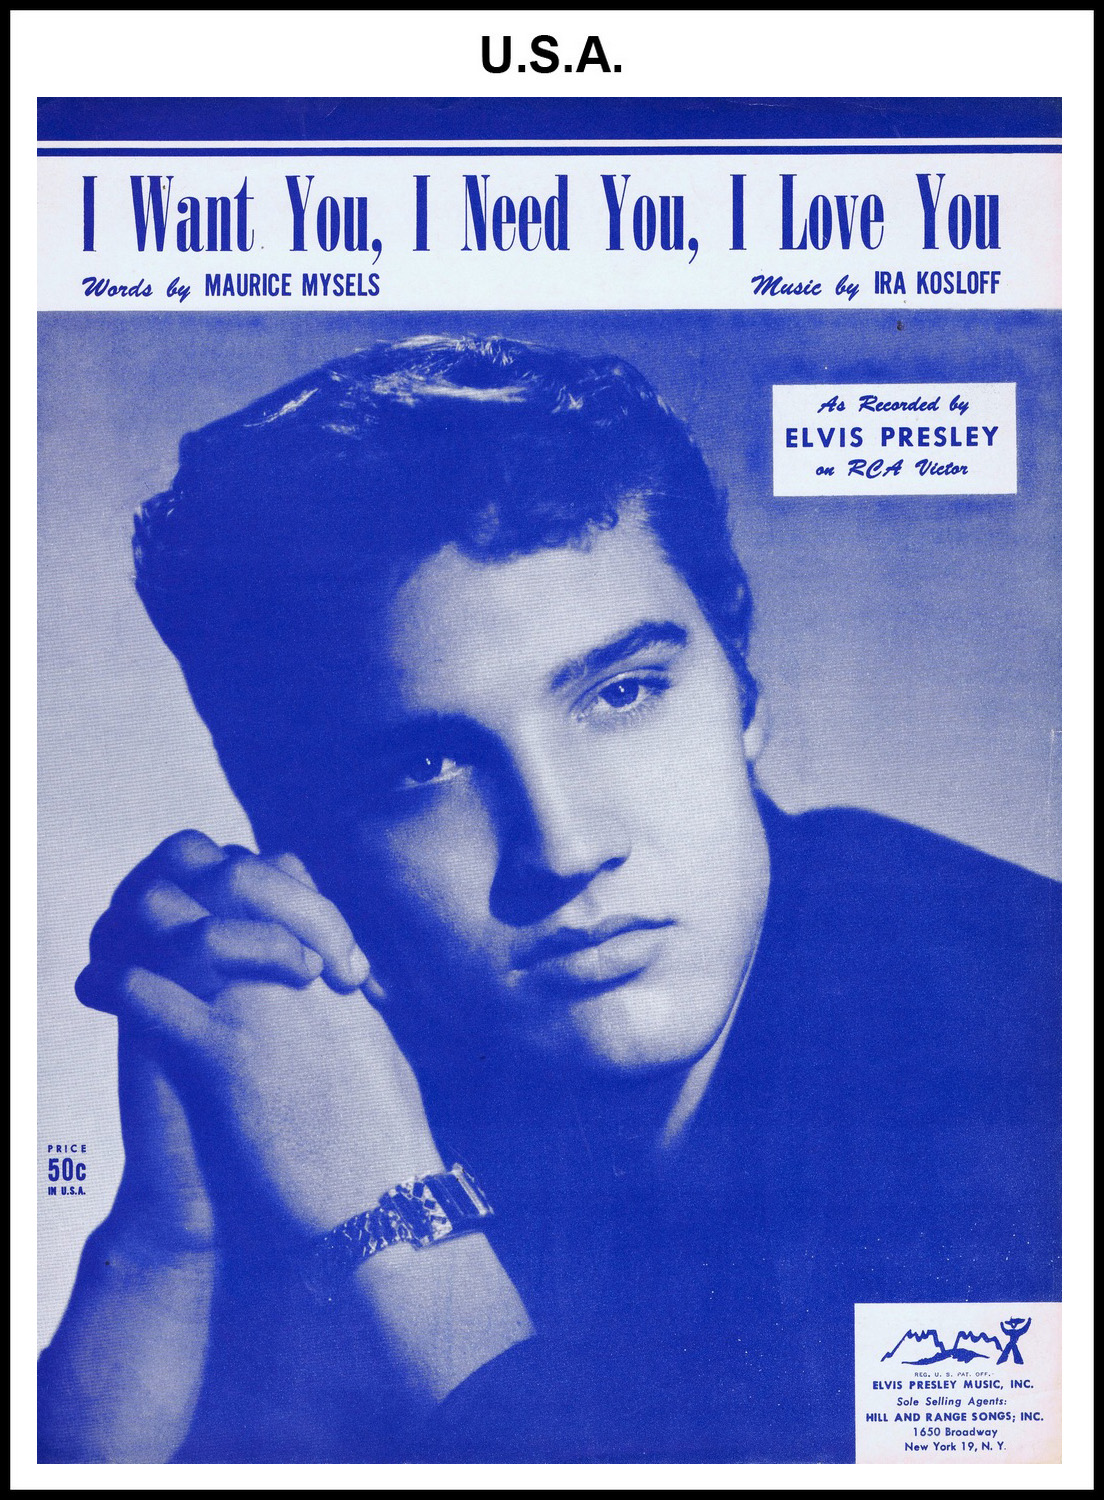 1956 - I Want You, I Need You, I Love You (USA 50c) (CHRIS GILES COLLECTION)